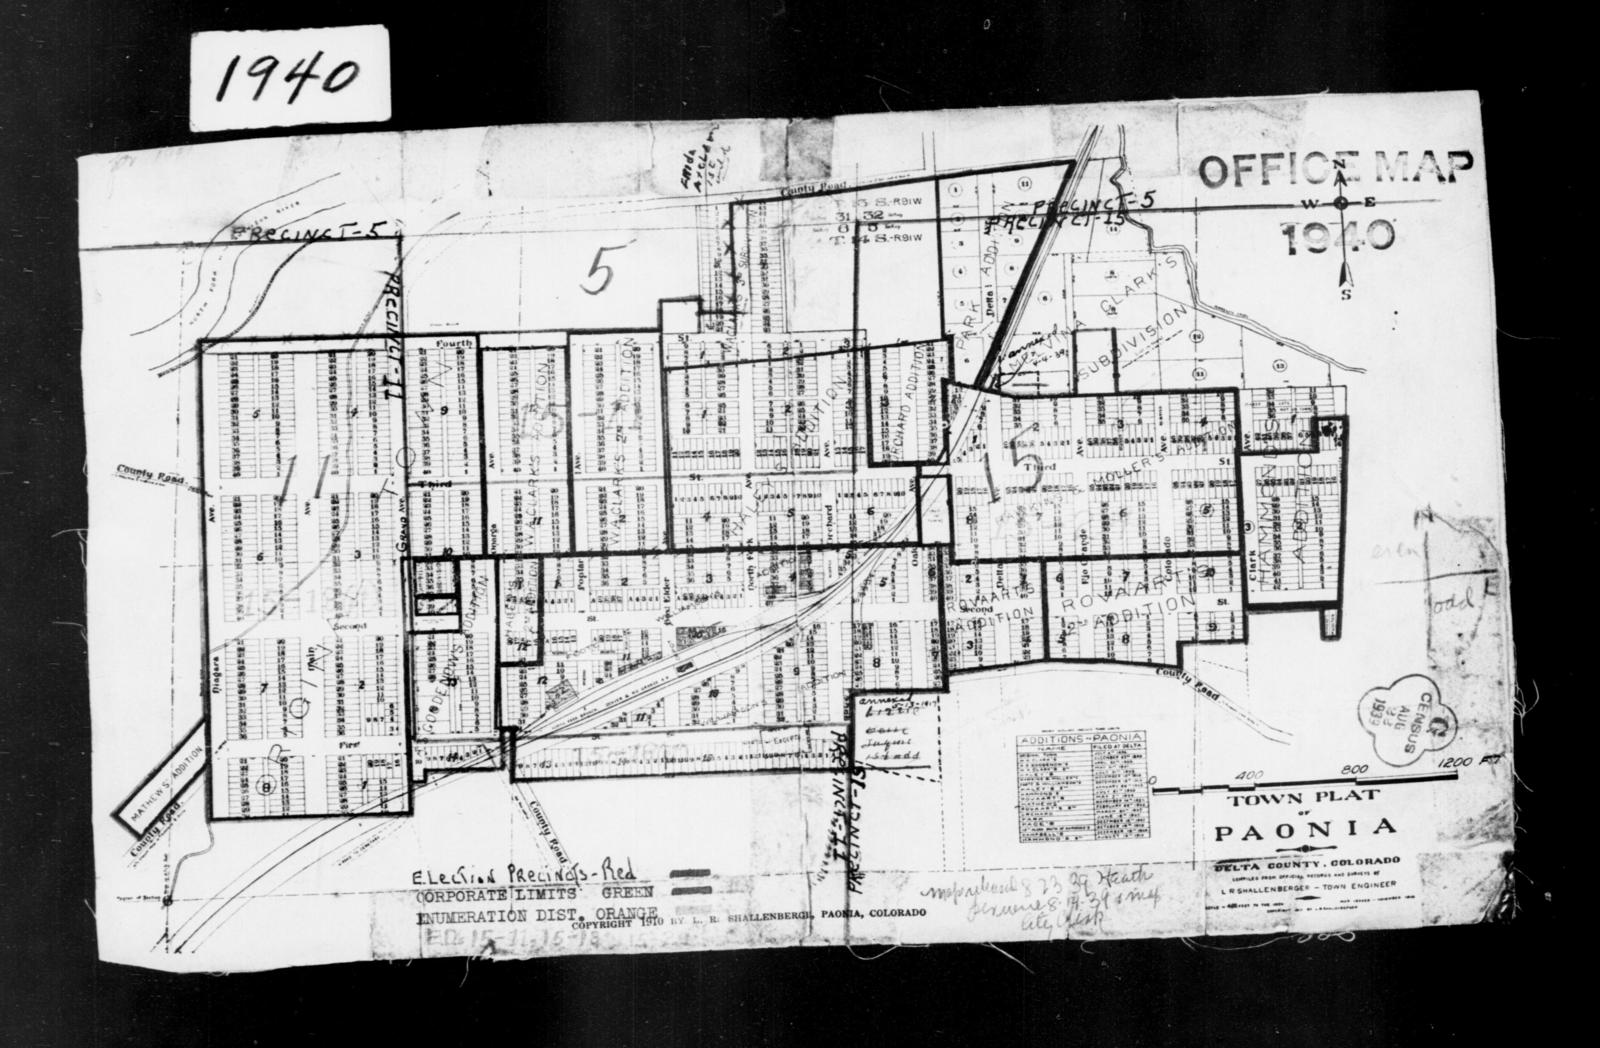 Delta County Colorado Map.1940 Census Enumeration District Maps Colorado Delta County